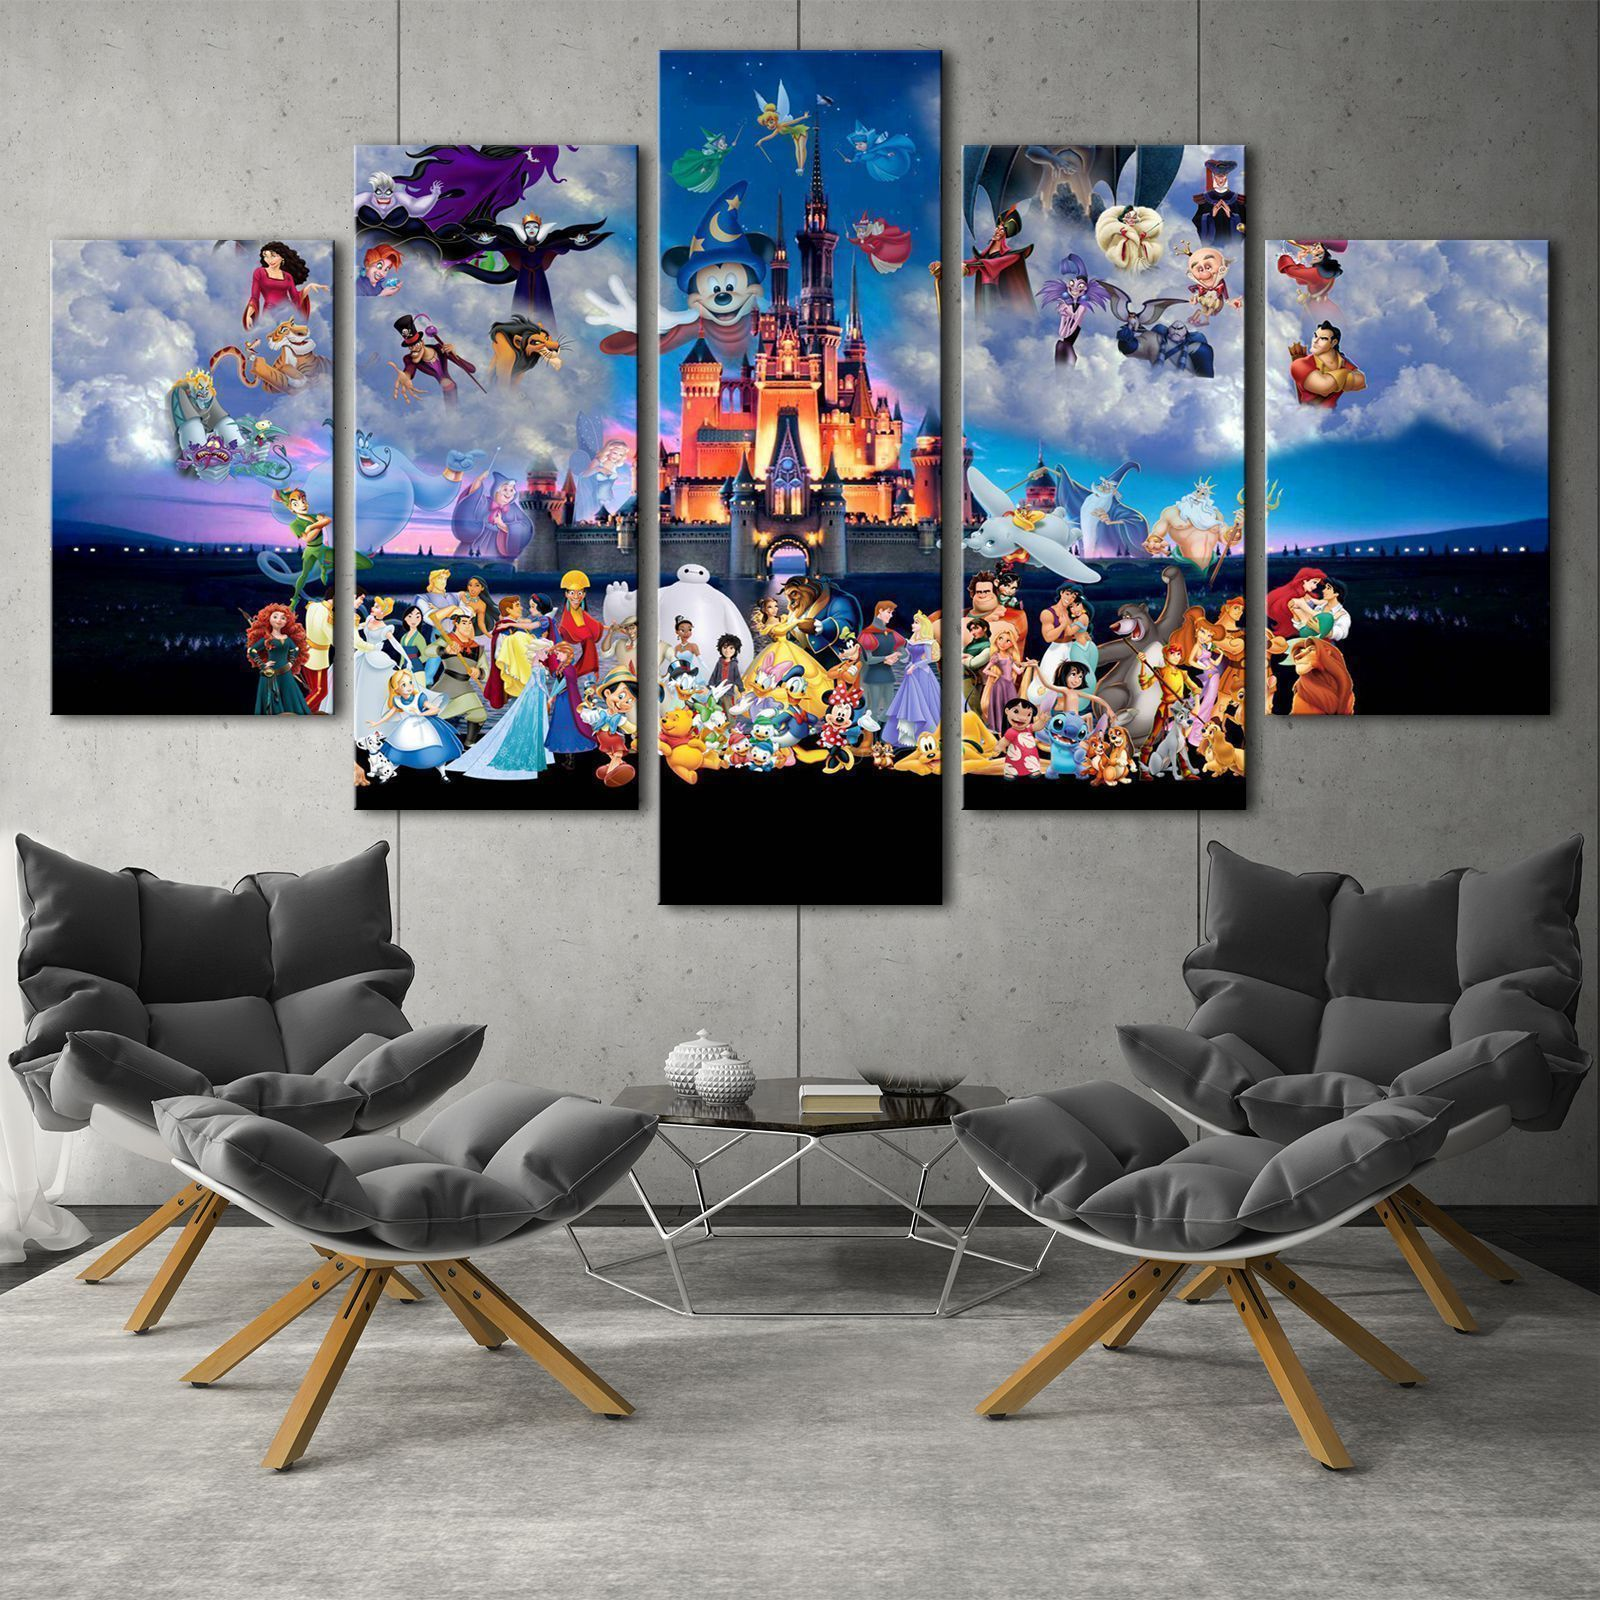 Disney Cartoon Characters HD Print on Canvas Painting Home Decor Framed Wall Art